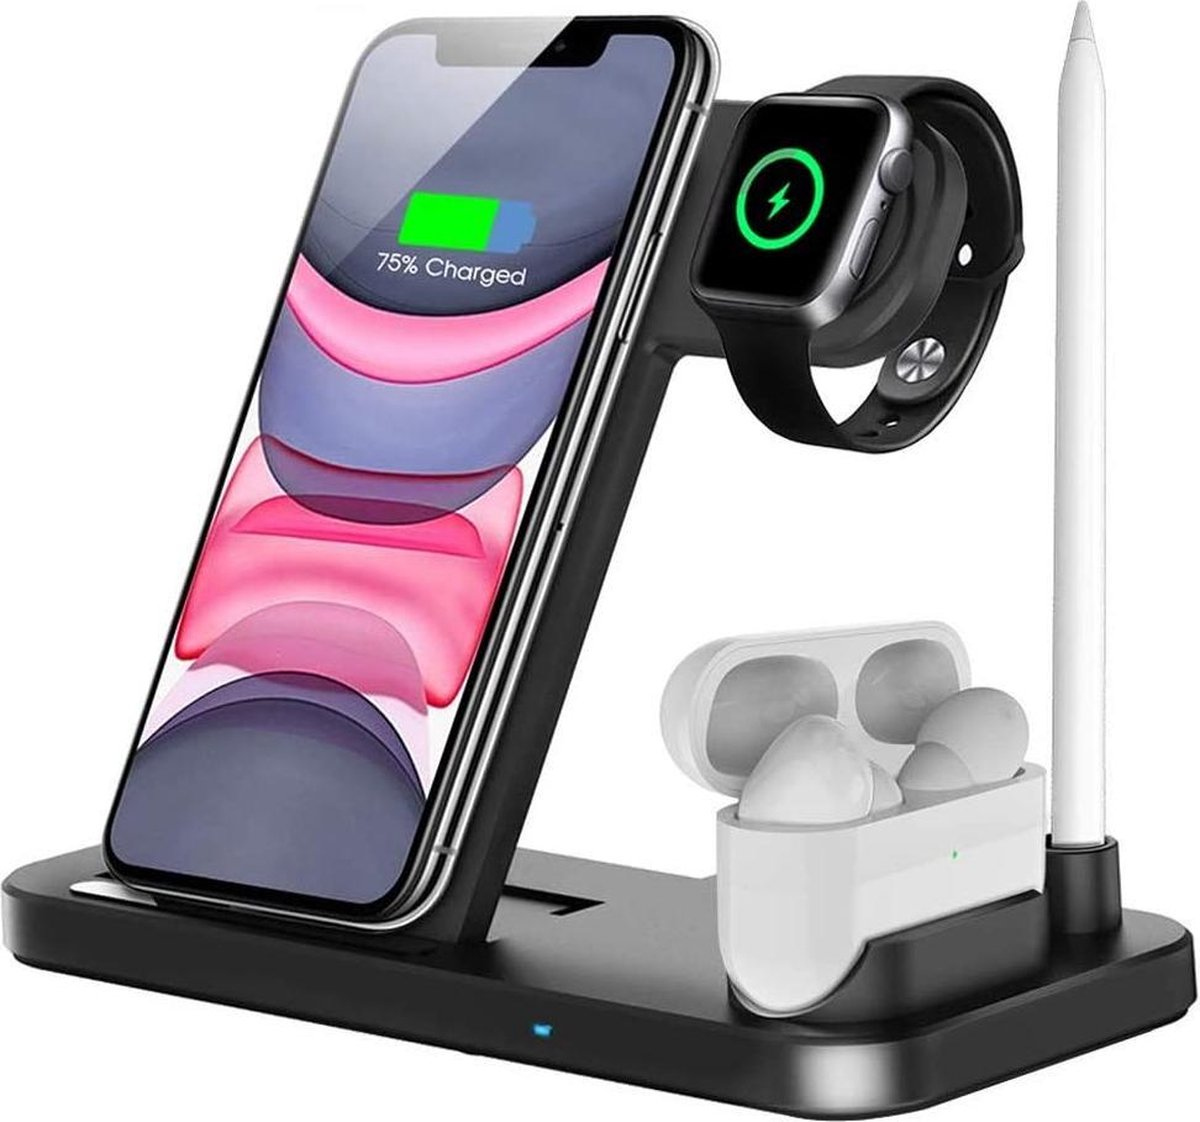 4in1 Oplaadstation – Draadloos – Oplaaddock – Qi Charger Dock – Lader Apple Iphone – Lightning – Apple Watch – Apple Airpods – Android – Samsung USB-C – Micro USB – Laadstation – Laaddock – Qi gecertificeerd – Draadloze Qi lader